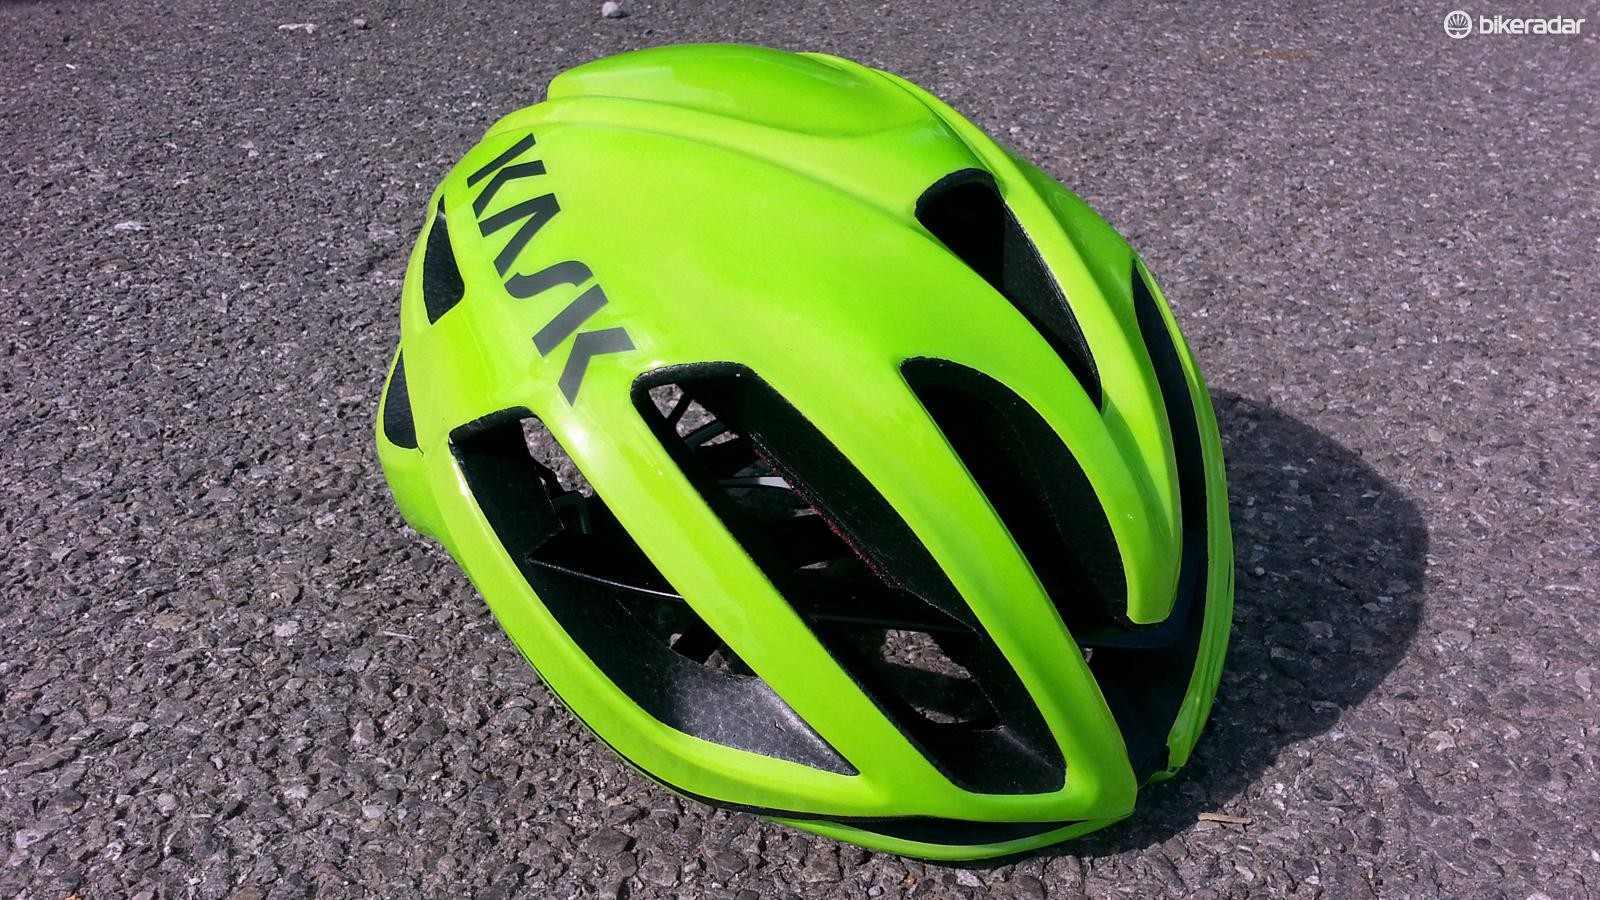 The Kask Protone has been developed in conjunction with Team Sky